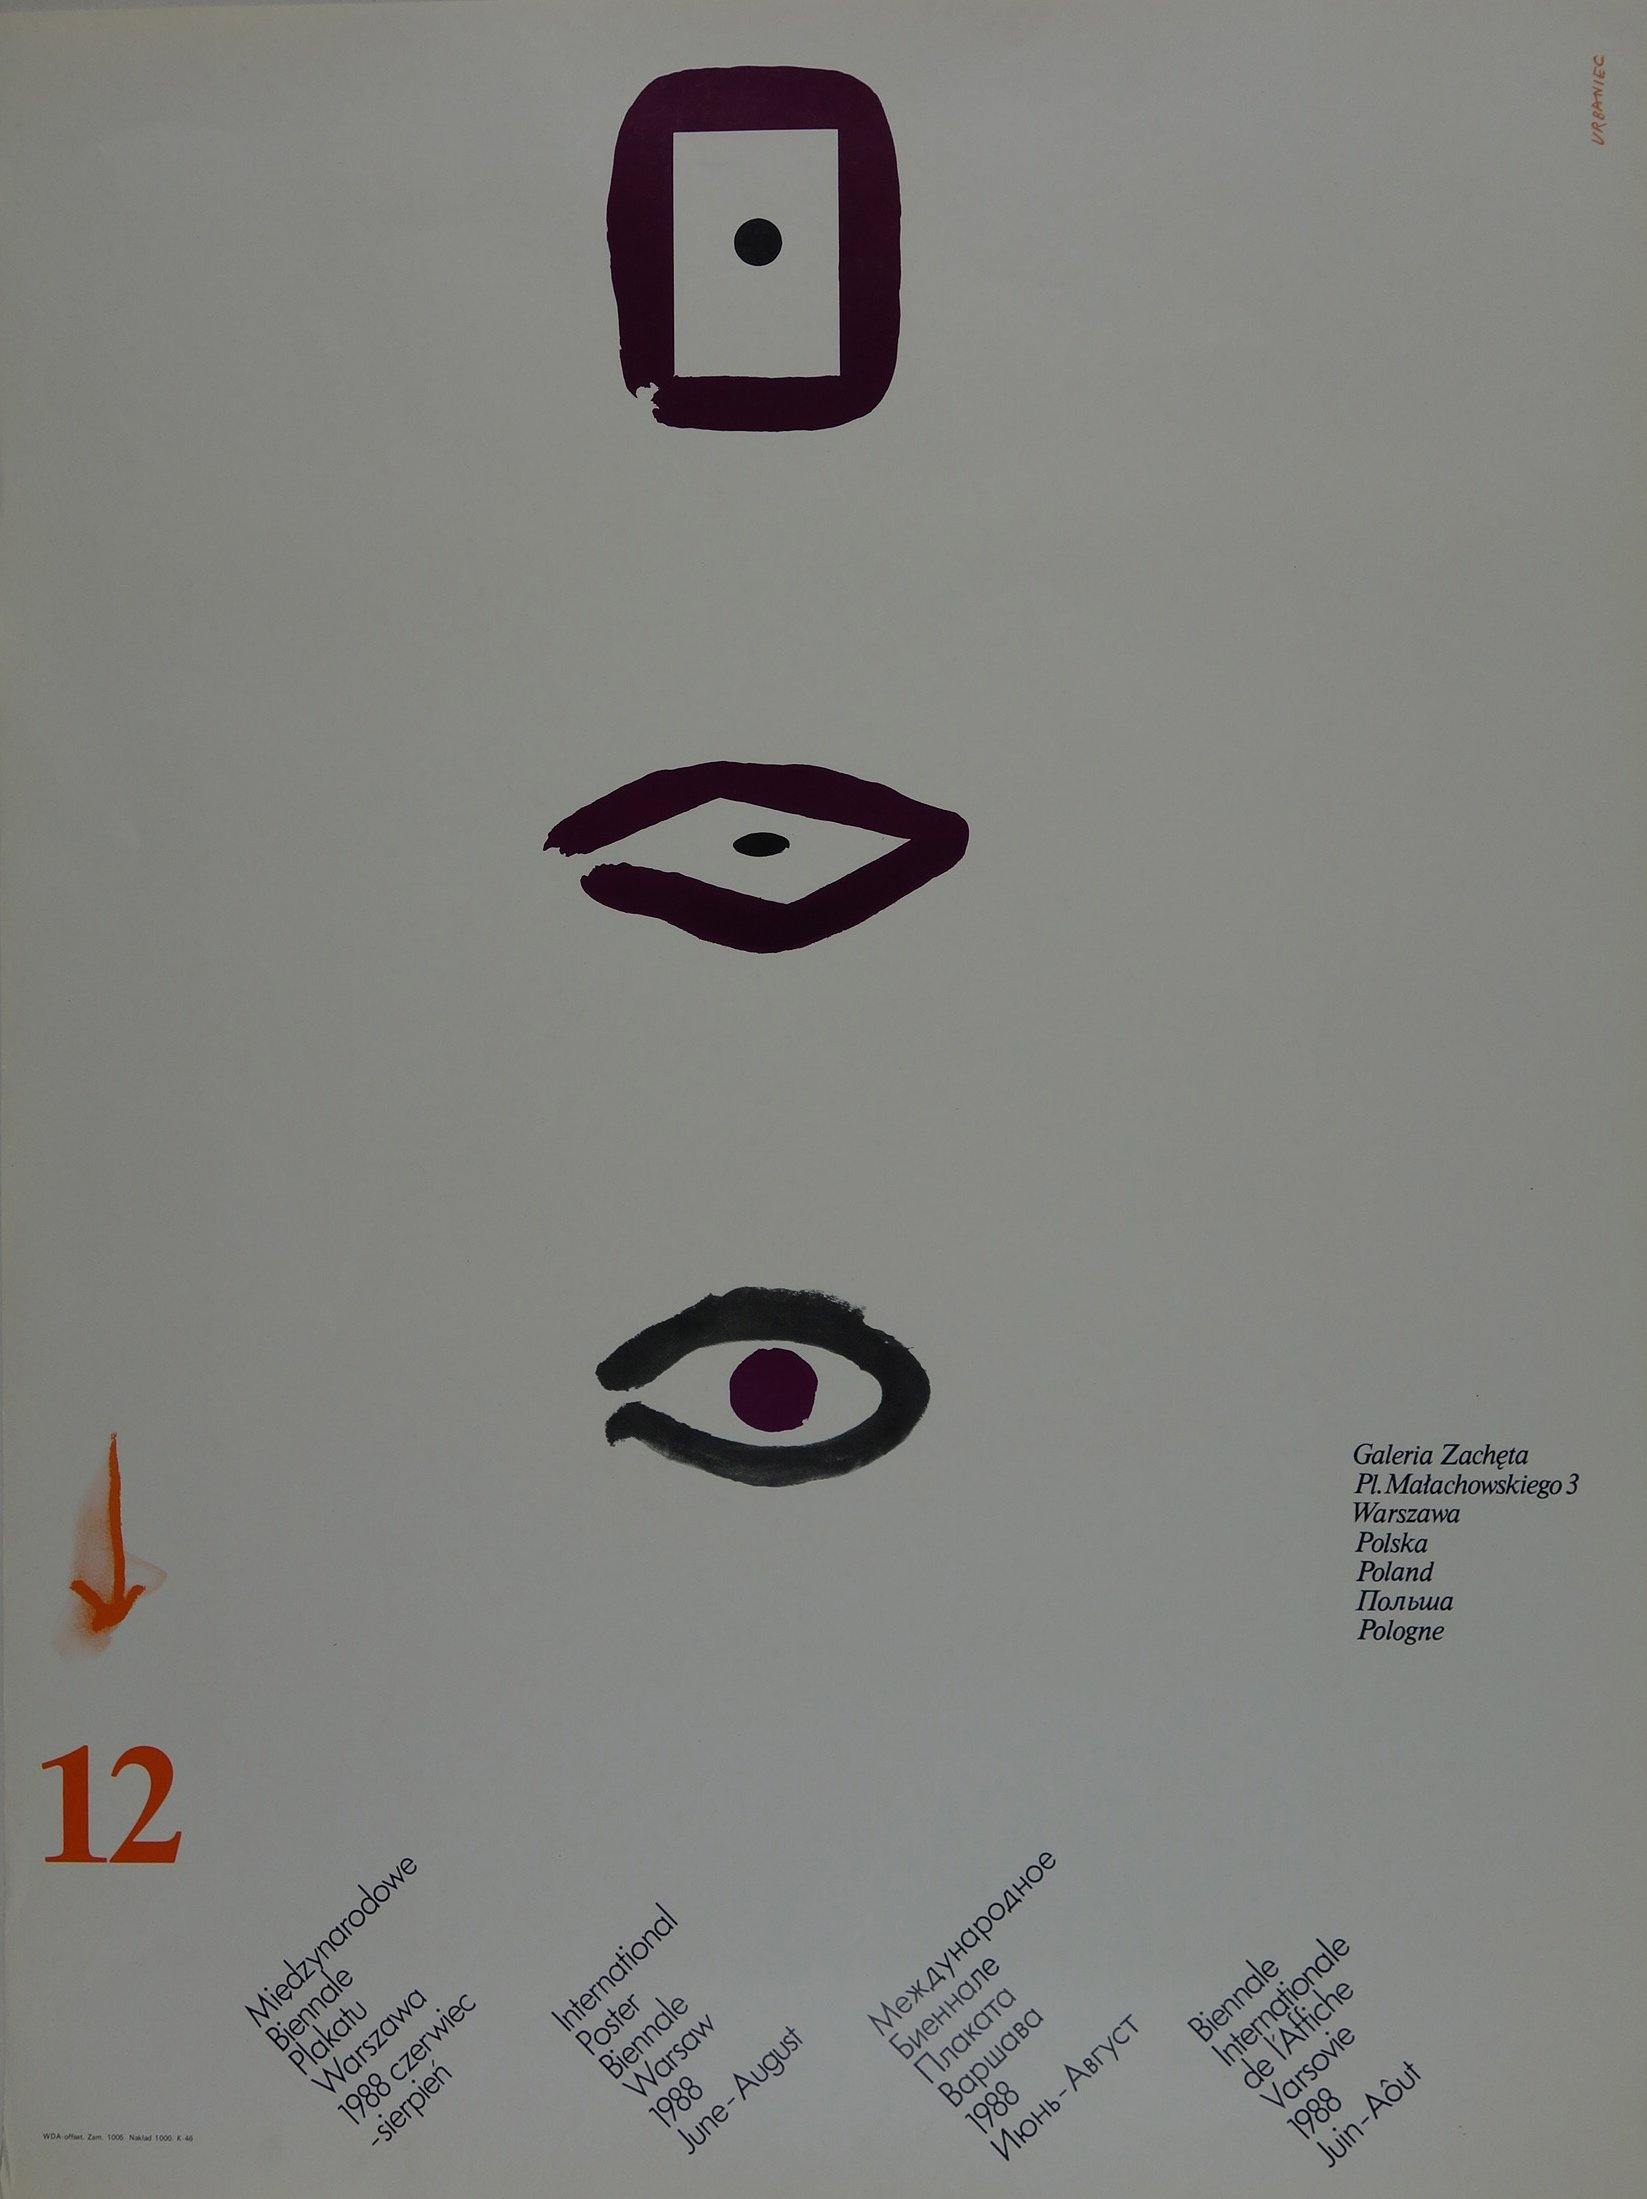 12th International Poster Biennale Warsaw - Poster Museum